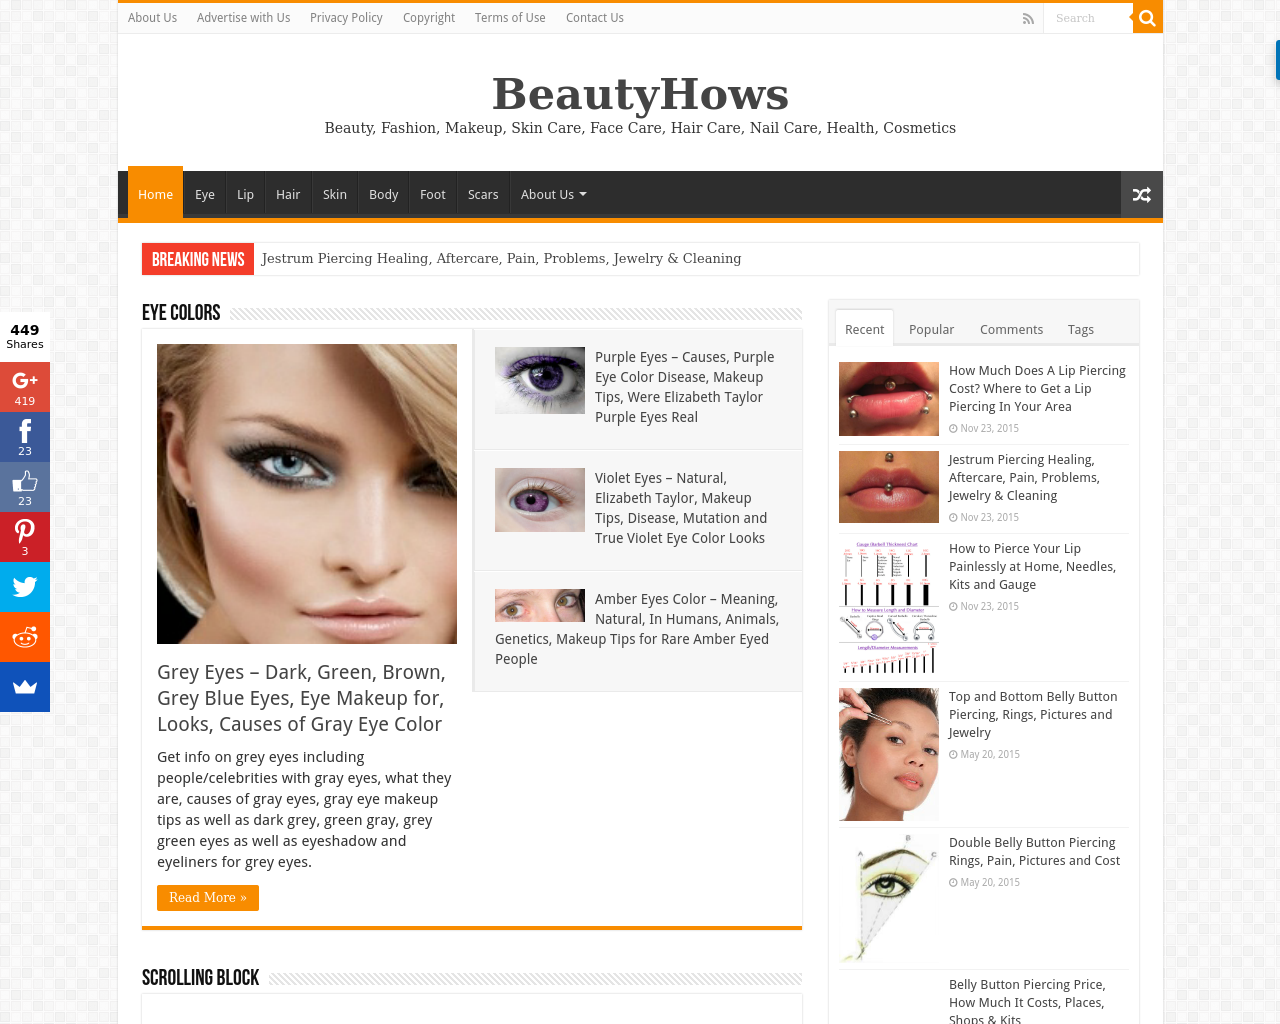 BeautyHows-Advertising-Reviews-Pricing